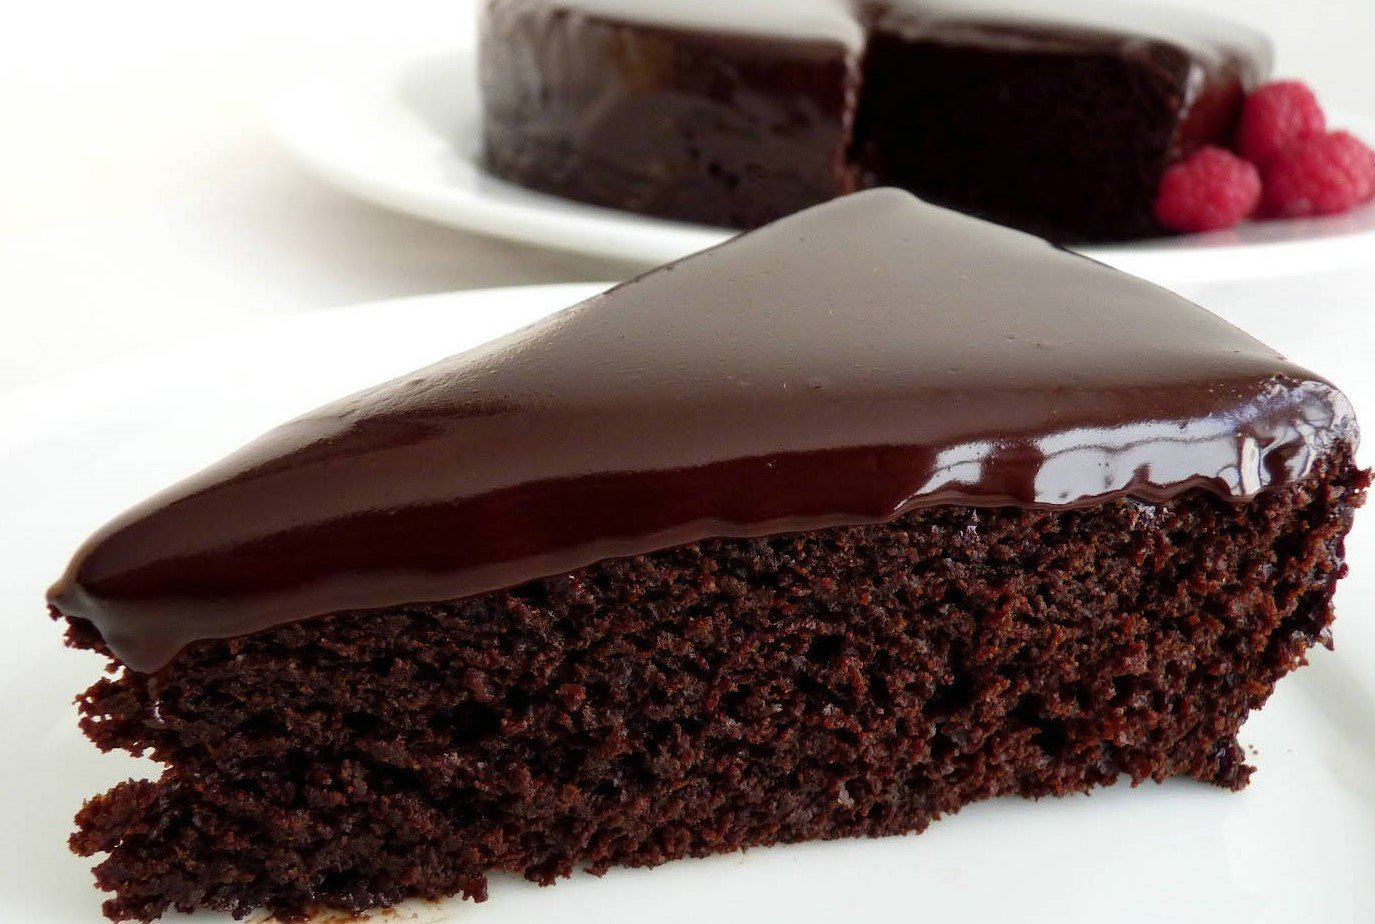 FINEST T DESERTS YOU CAN MAKE WITH CHOCOLATE GANACHE